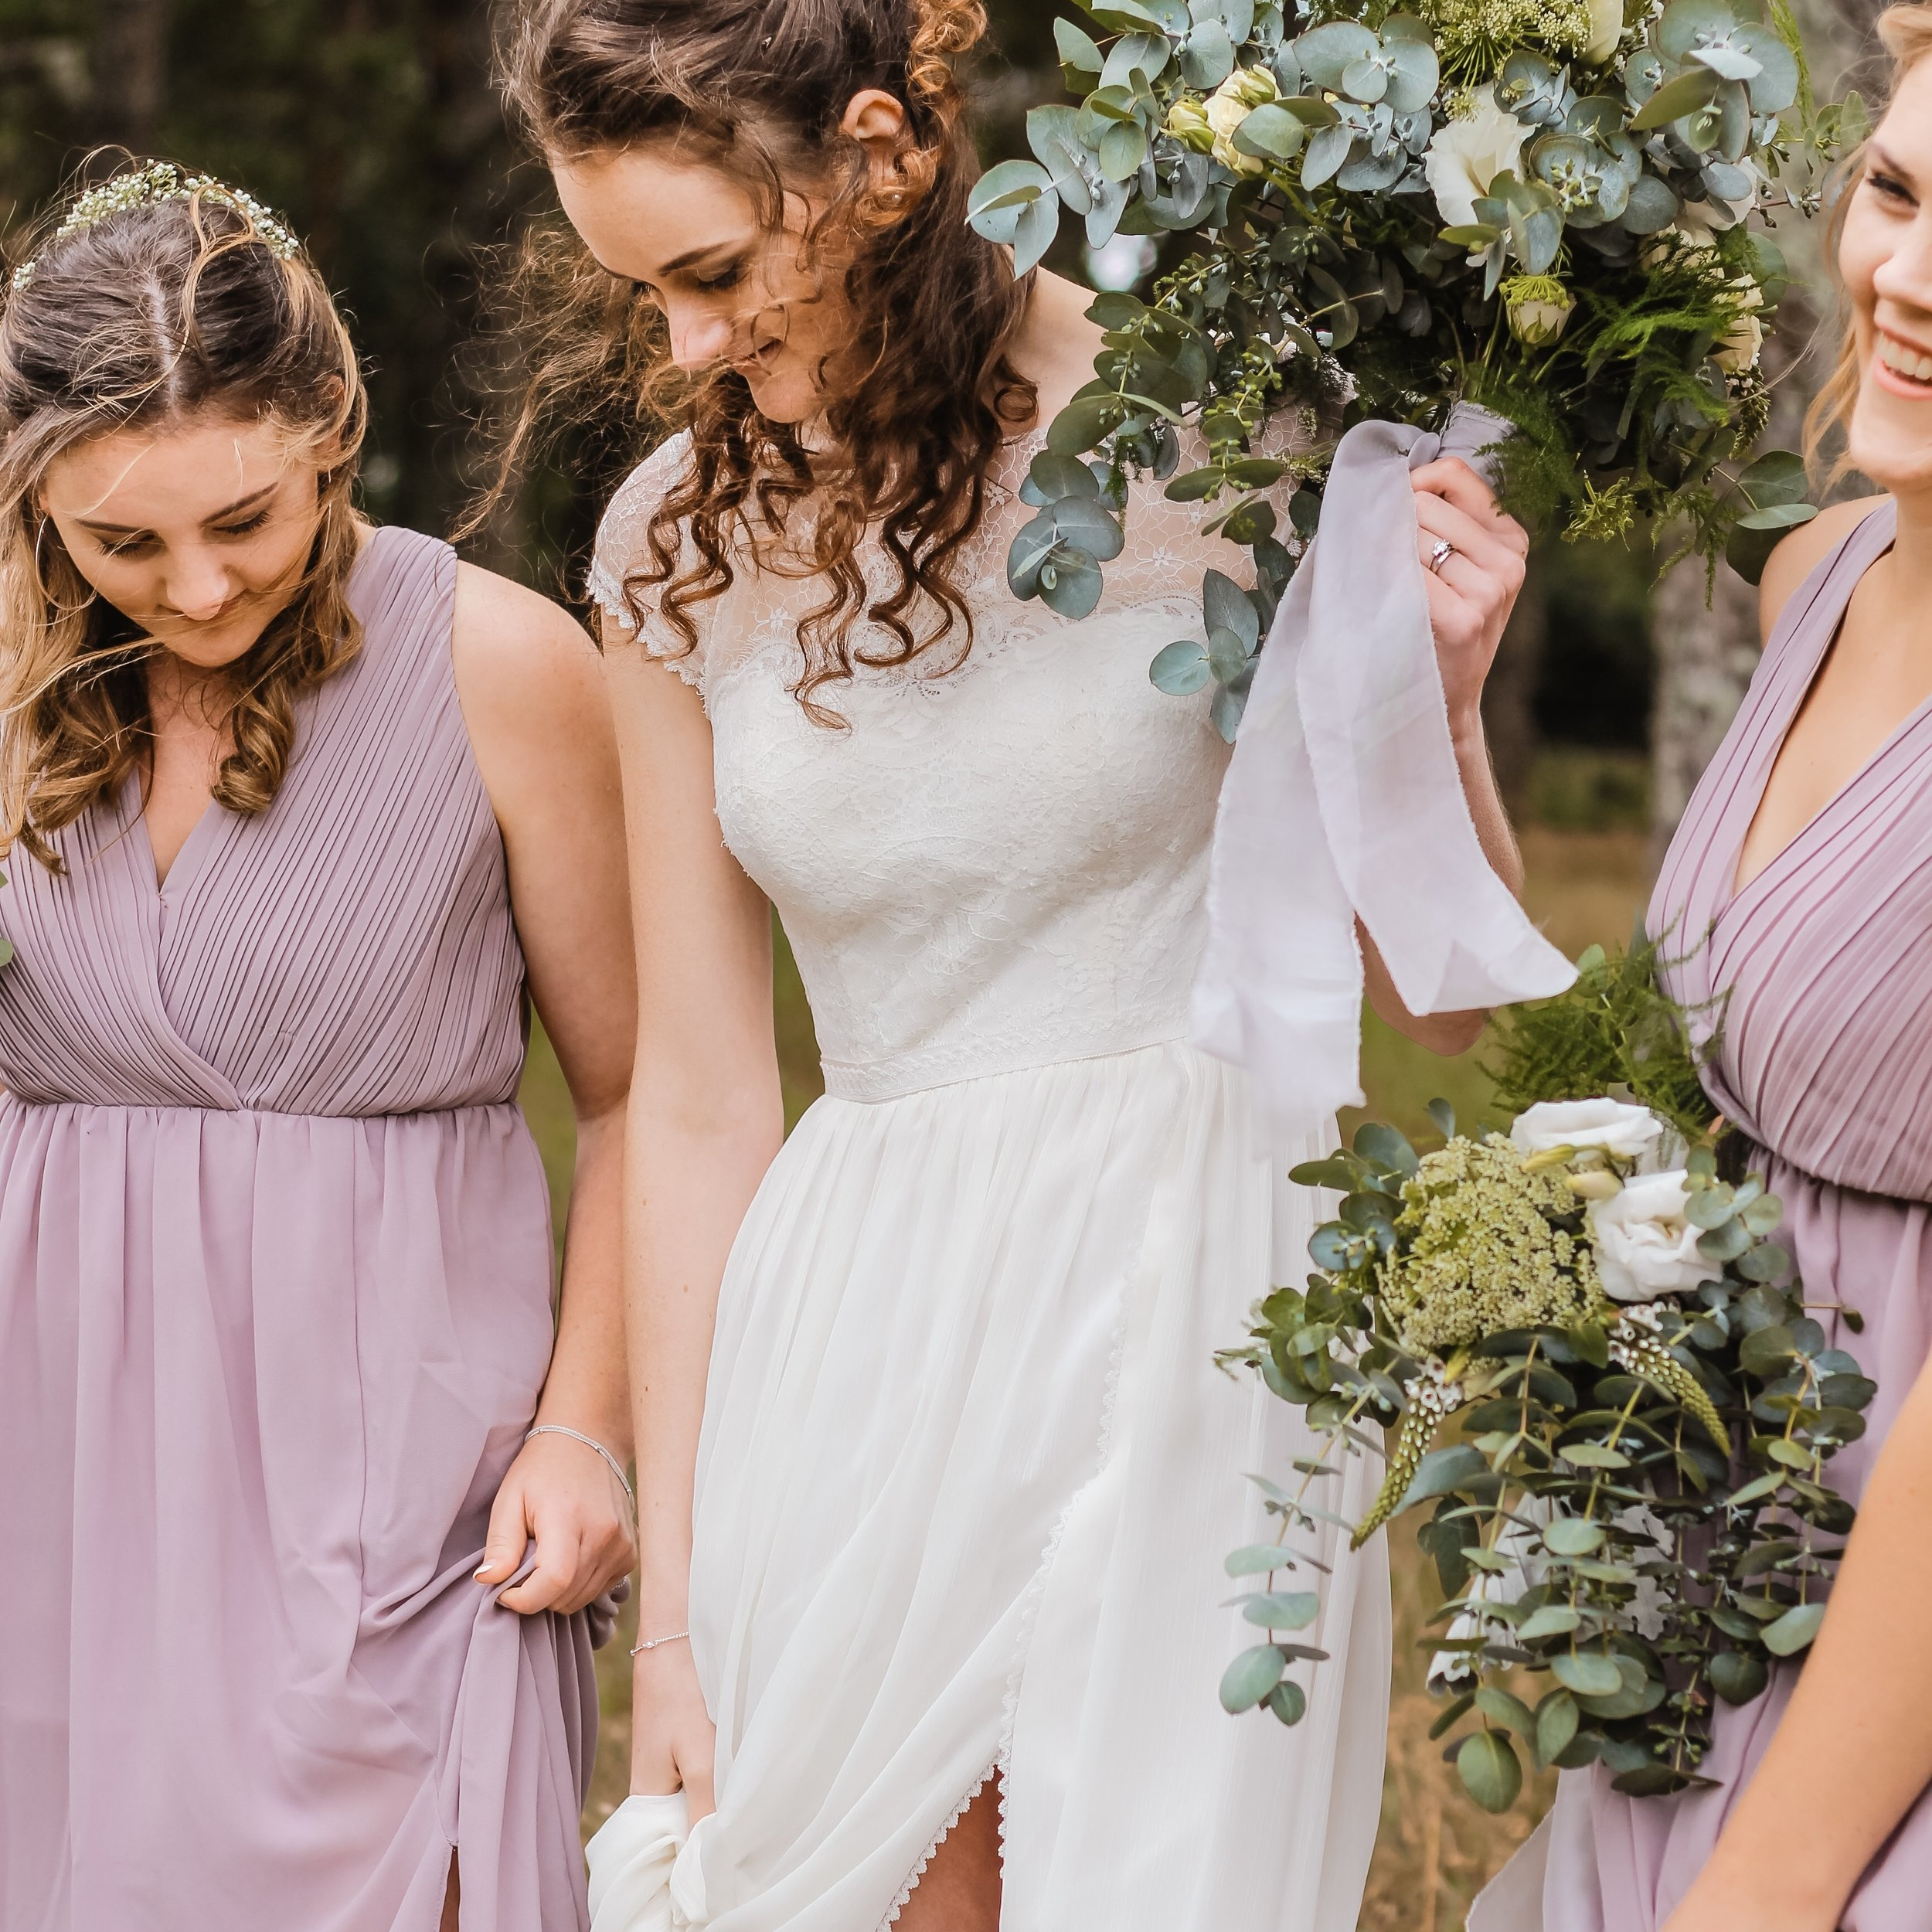 DRESS SHOPPING - For the perfect day, you'll need the perfect gown! We'll accompany you to every appointment and even help choose your accessories!